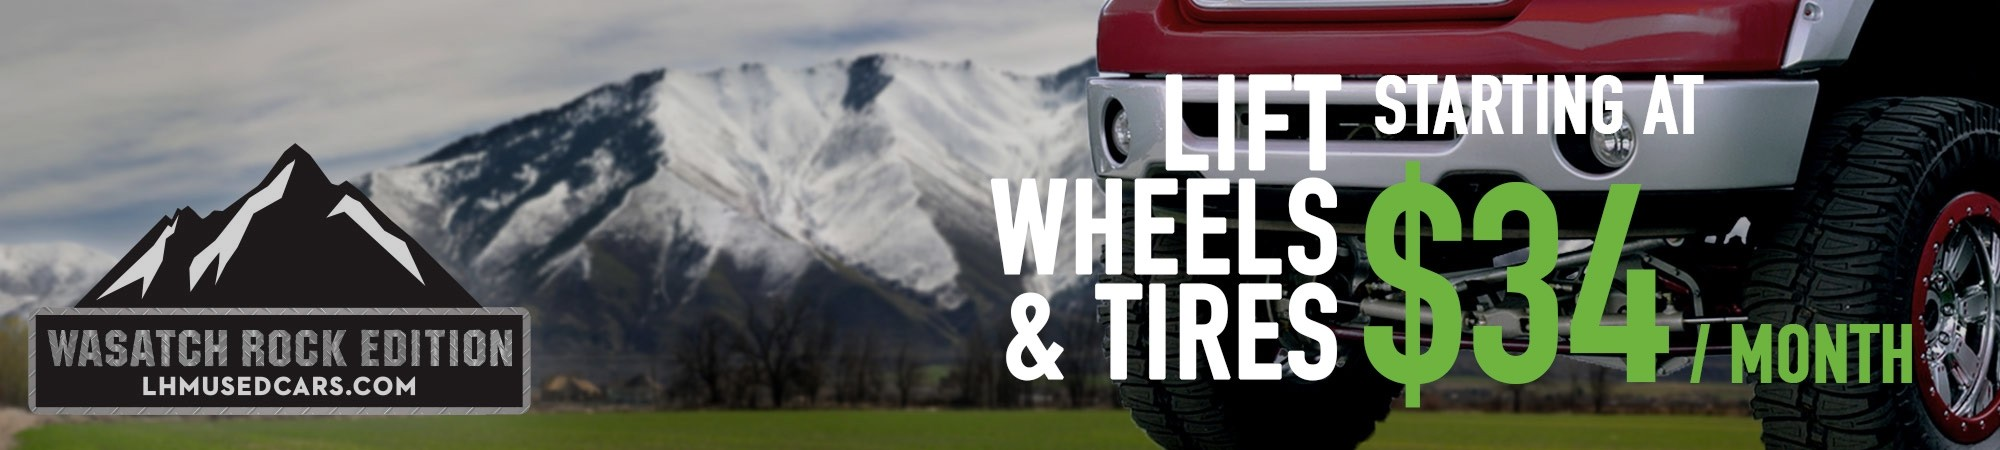 Lift, Wheels & Tires $34/mo